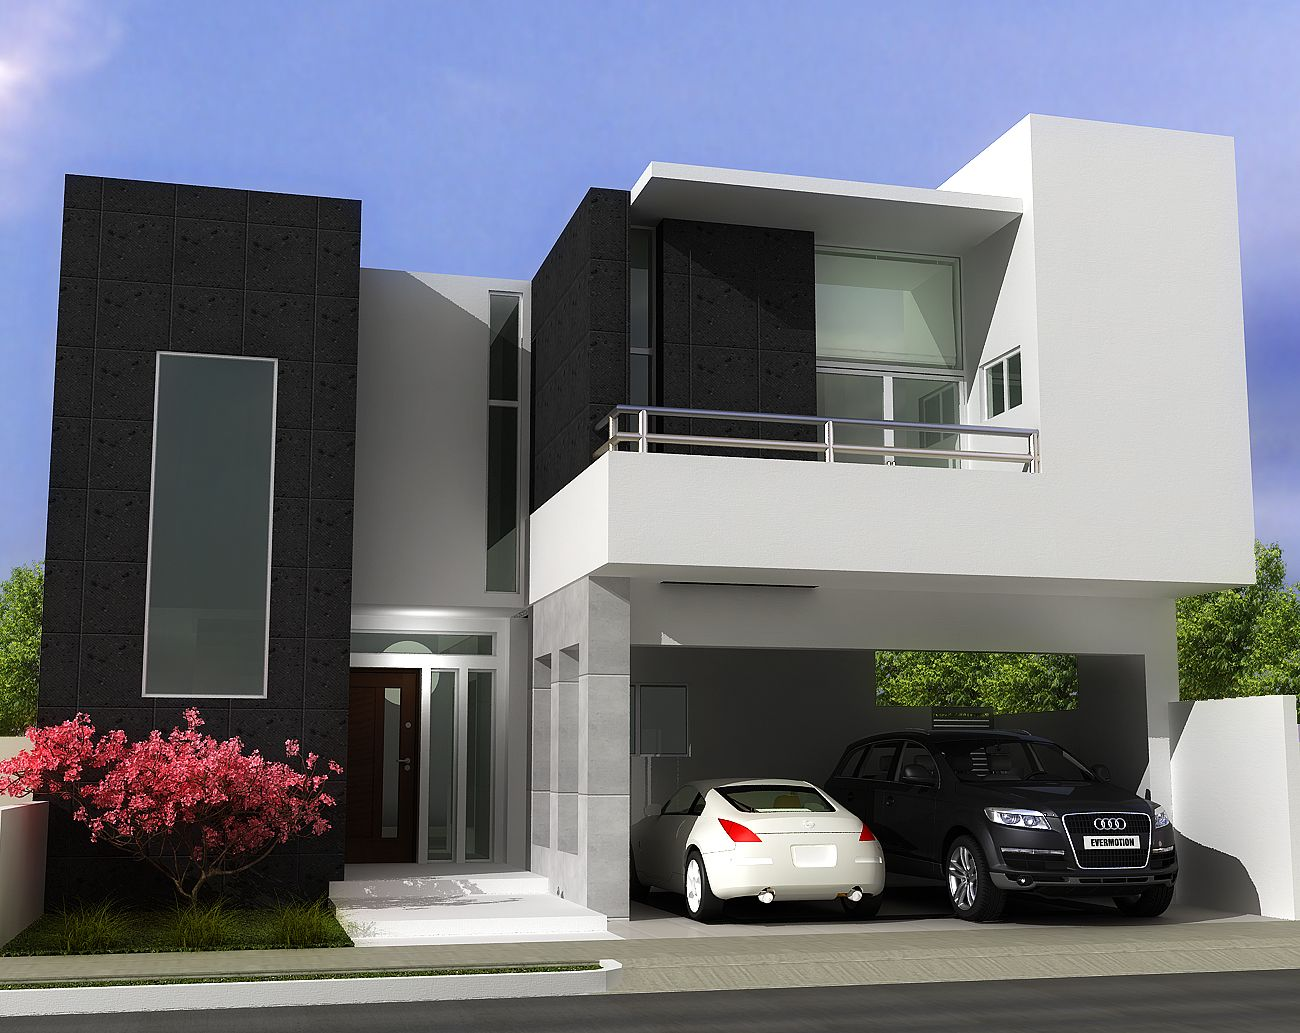 Contemporary Residential 3 Story Building Residential Home Contemporary Houses